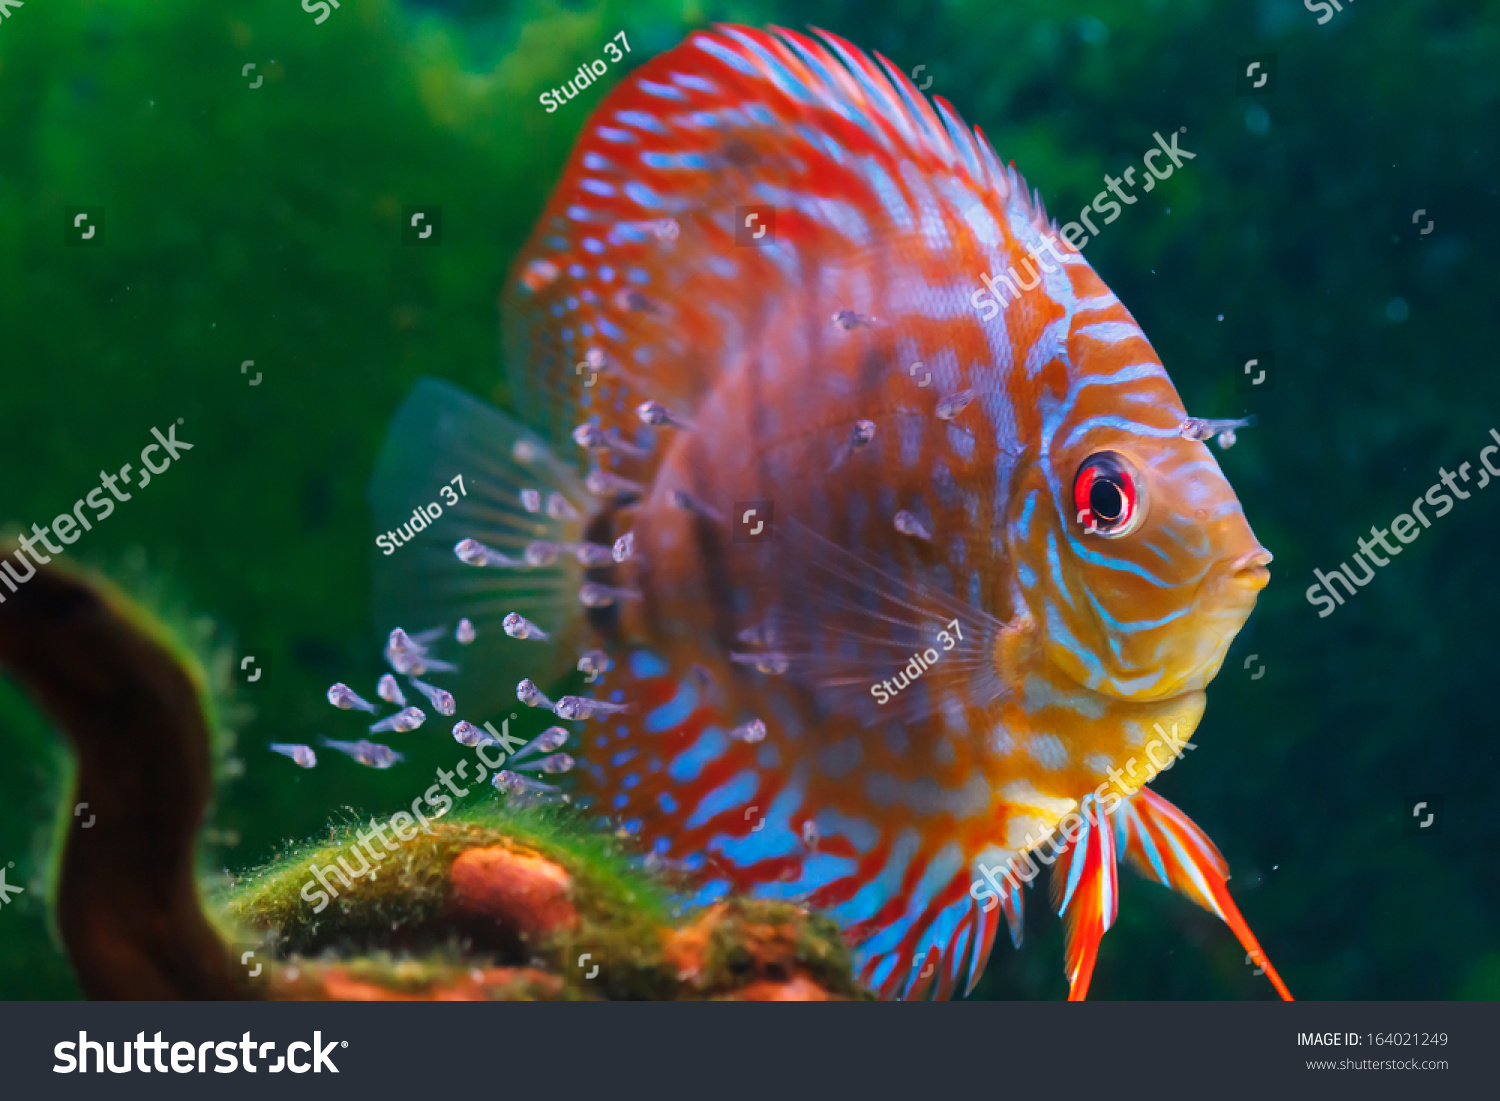 Freshwater fish amazon - Baby Discus Fish Swimming In Freshwater Discus Fishes Are Native To The Amazon River